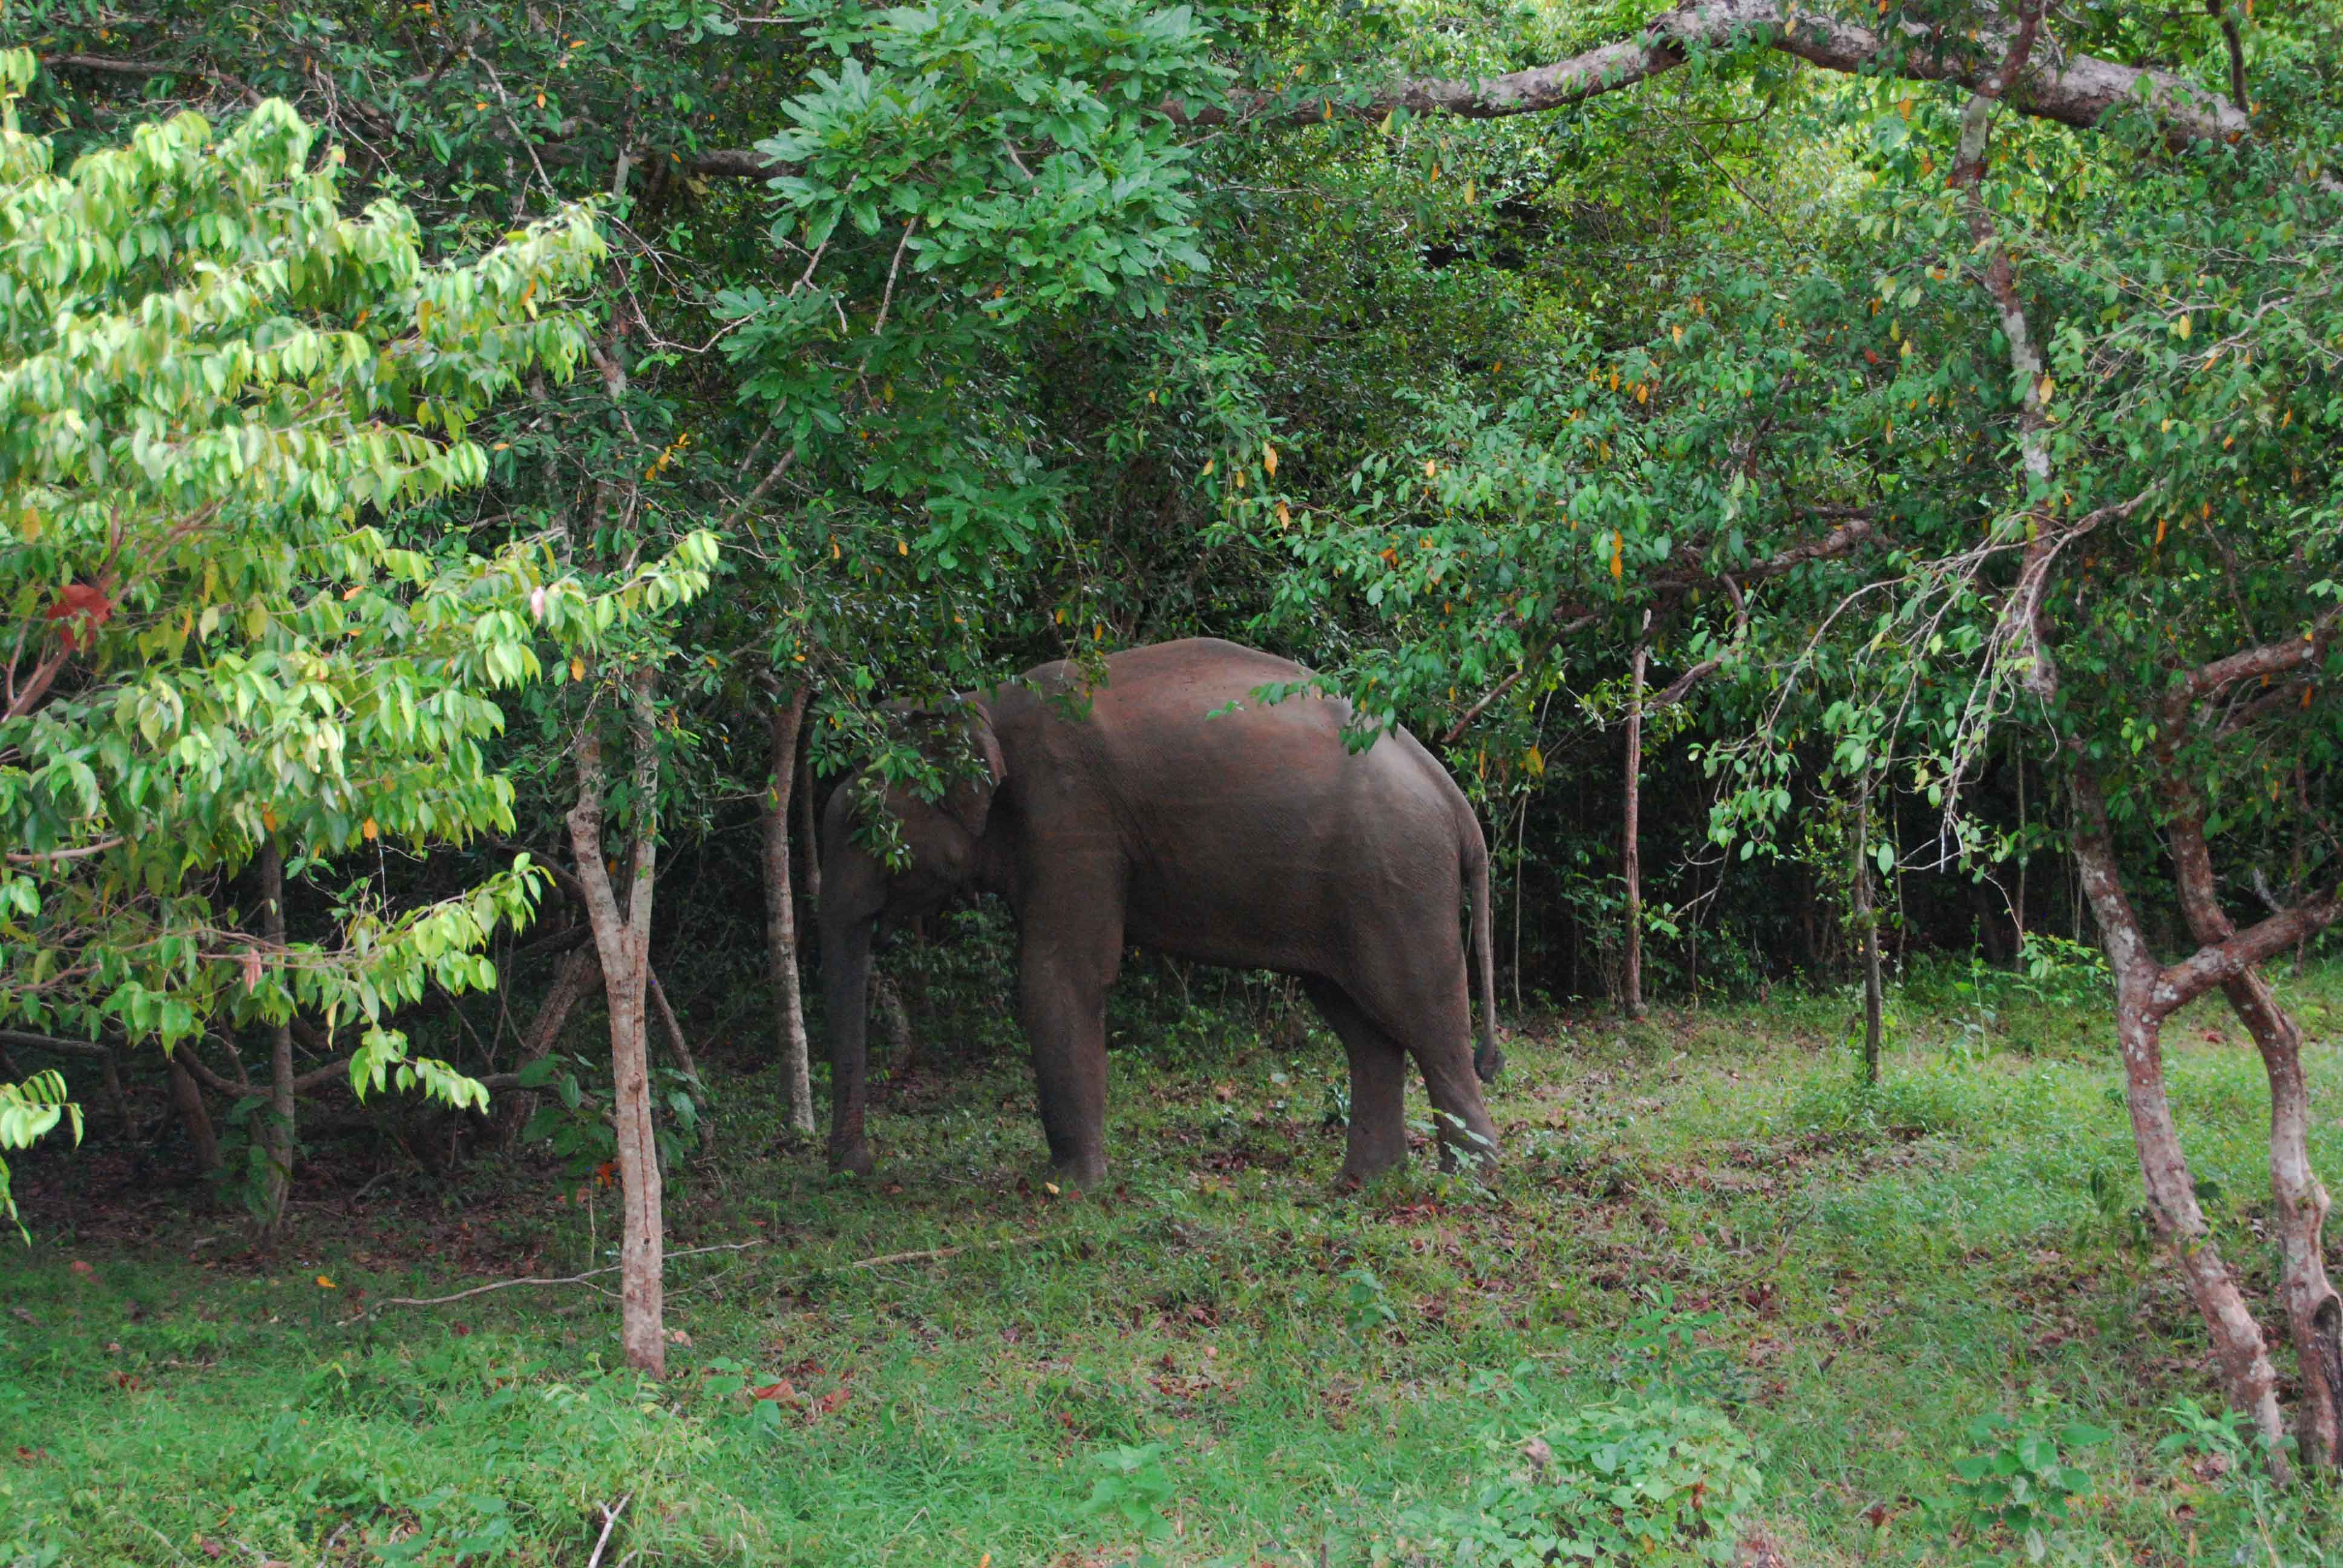 An Elephant retreats into the forest